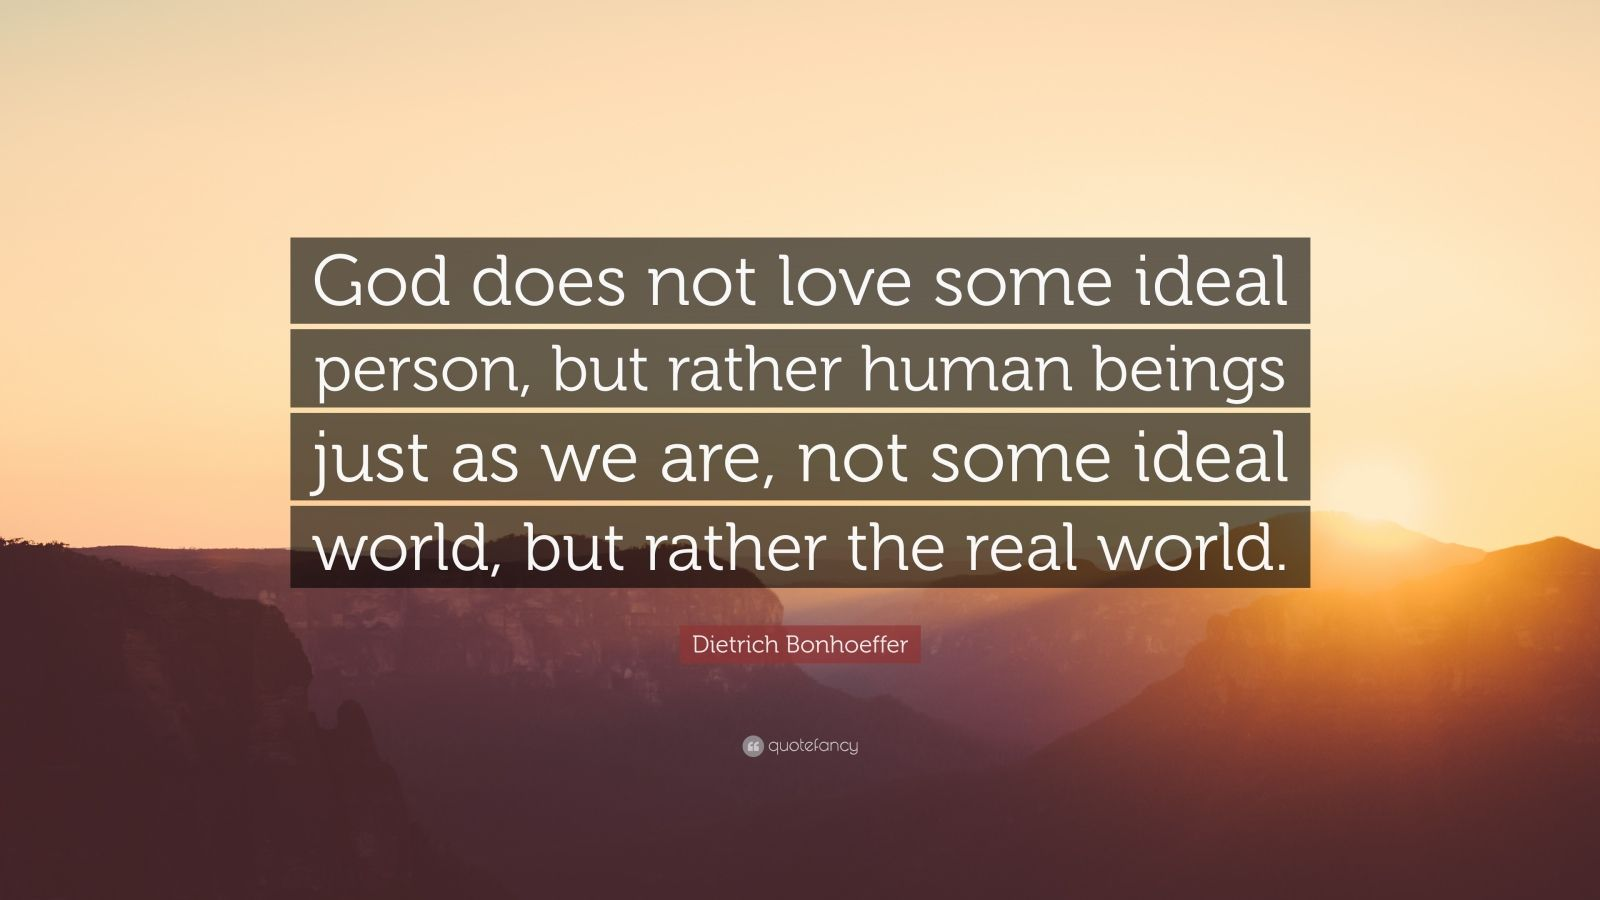 """Dietrich Bonhoeffer Quote: """"God does not love some ideal person, but rather human beings just as we are, not some ideal world, but rather the real world."""""""